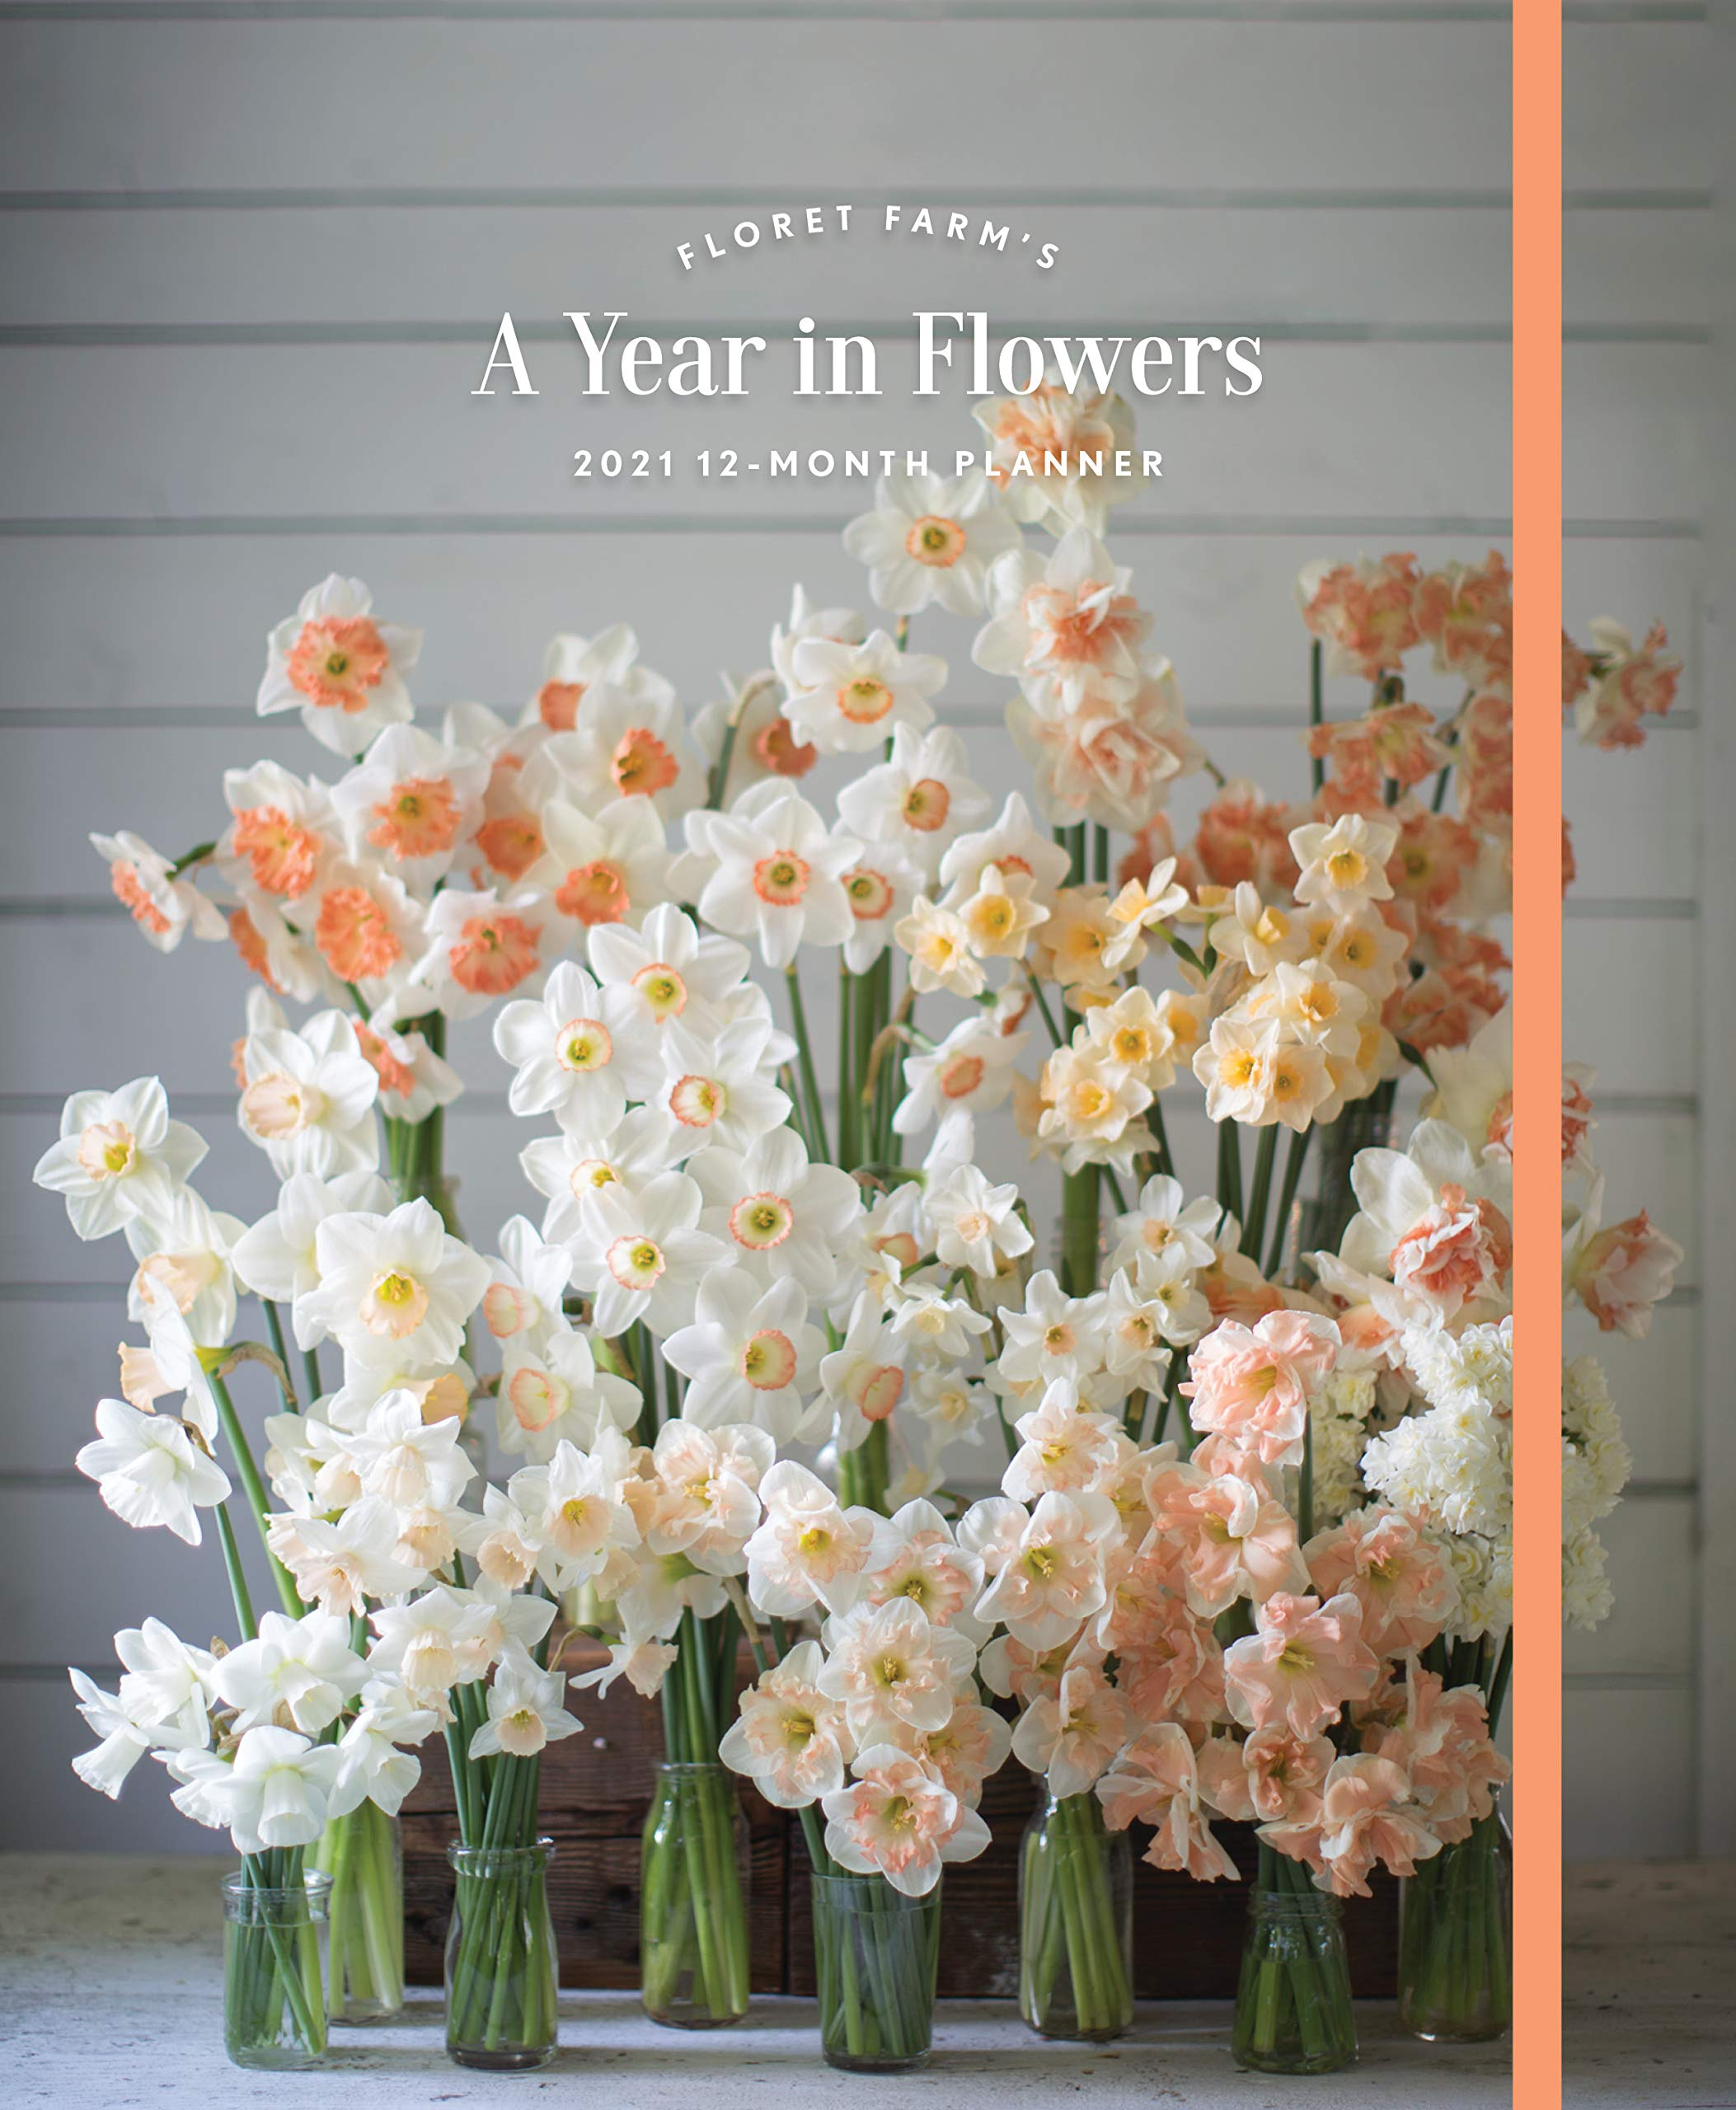 Floret Farm's A Year in Flowers 2021 12-Month Planner: (Gardening for Beginners Photographic Weekly Agenda, Floral…